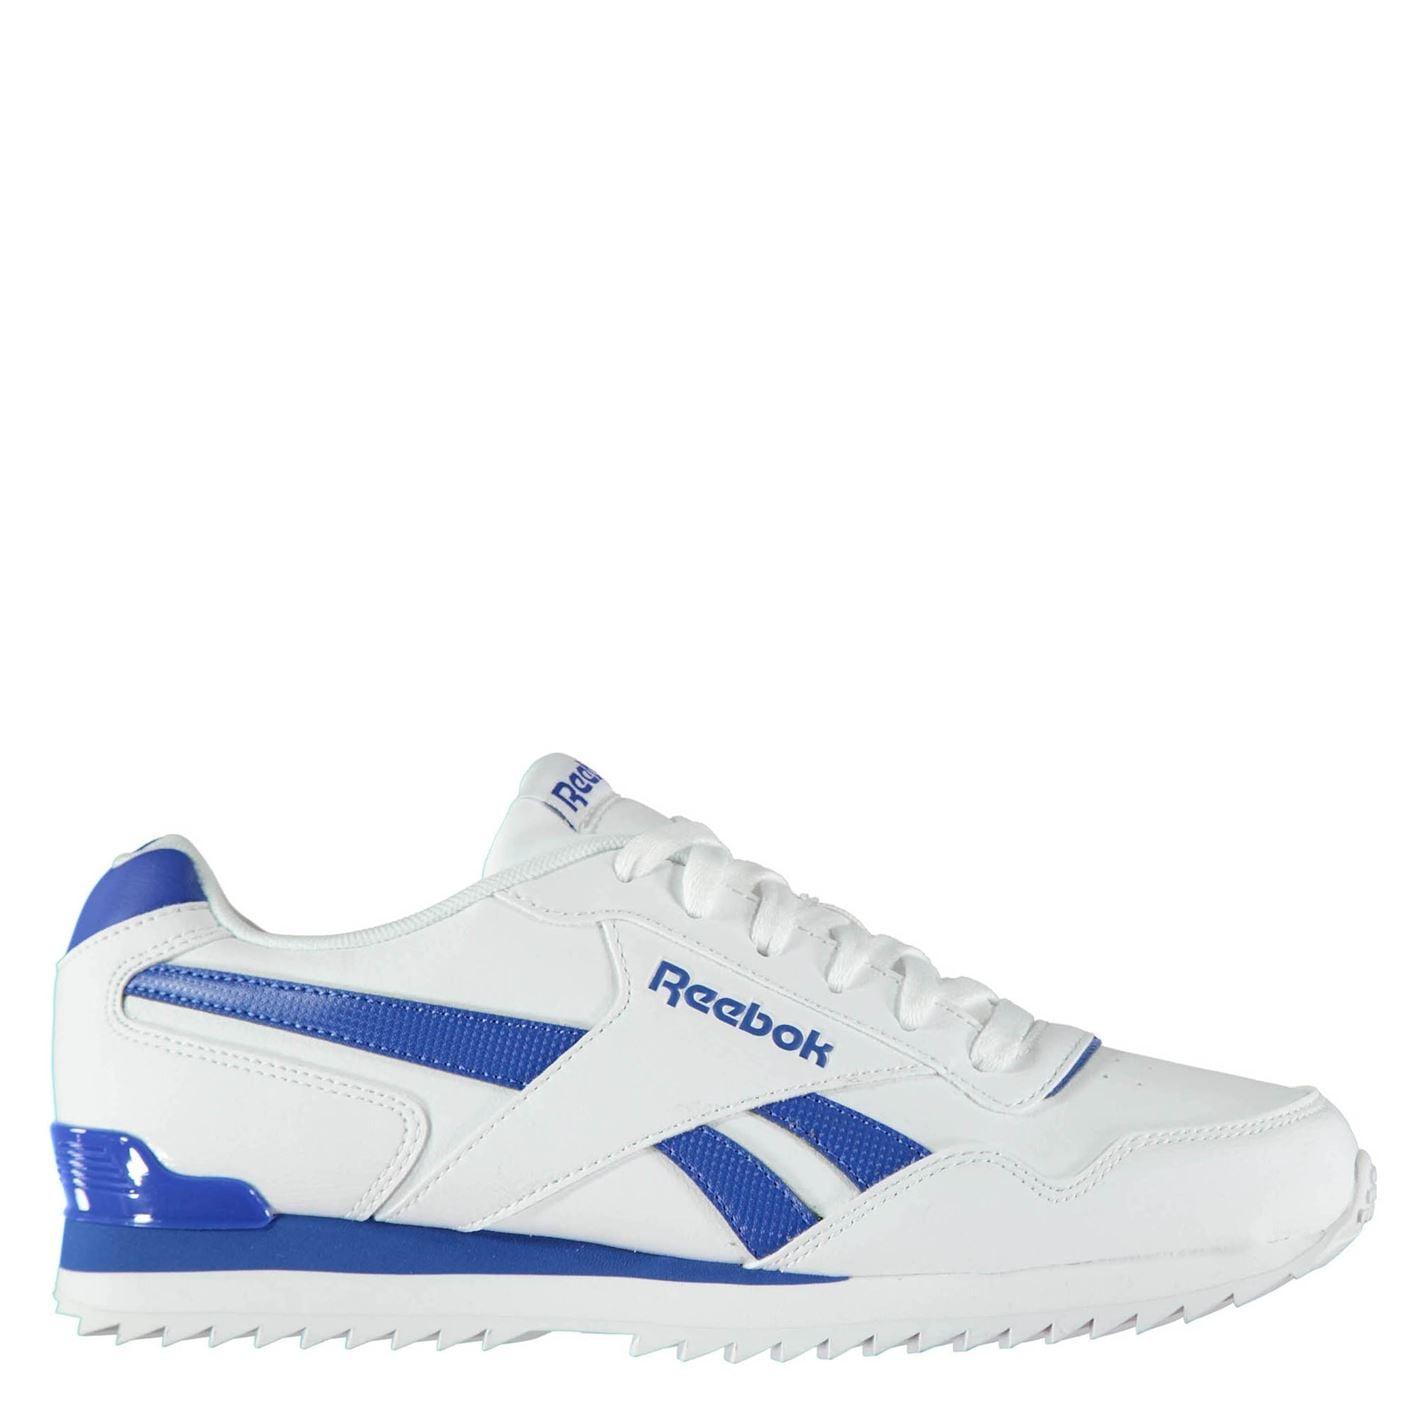 Reebok Royal Glide Ripple Clip Mens Trainers White Blue f34c23e1d3